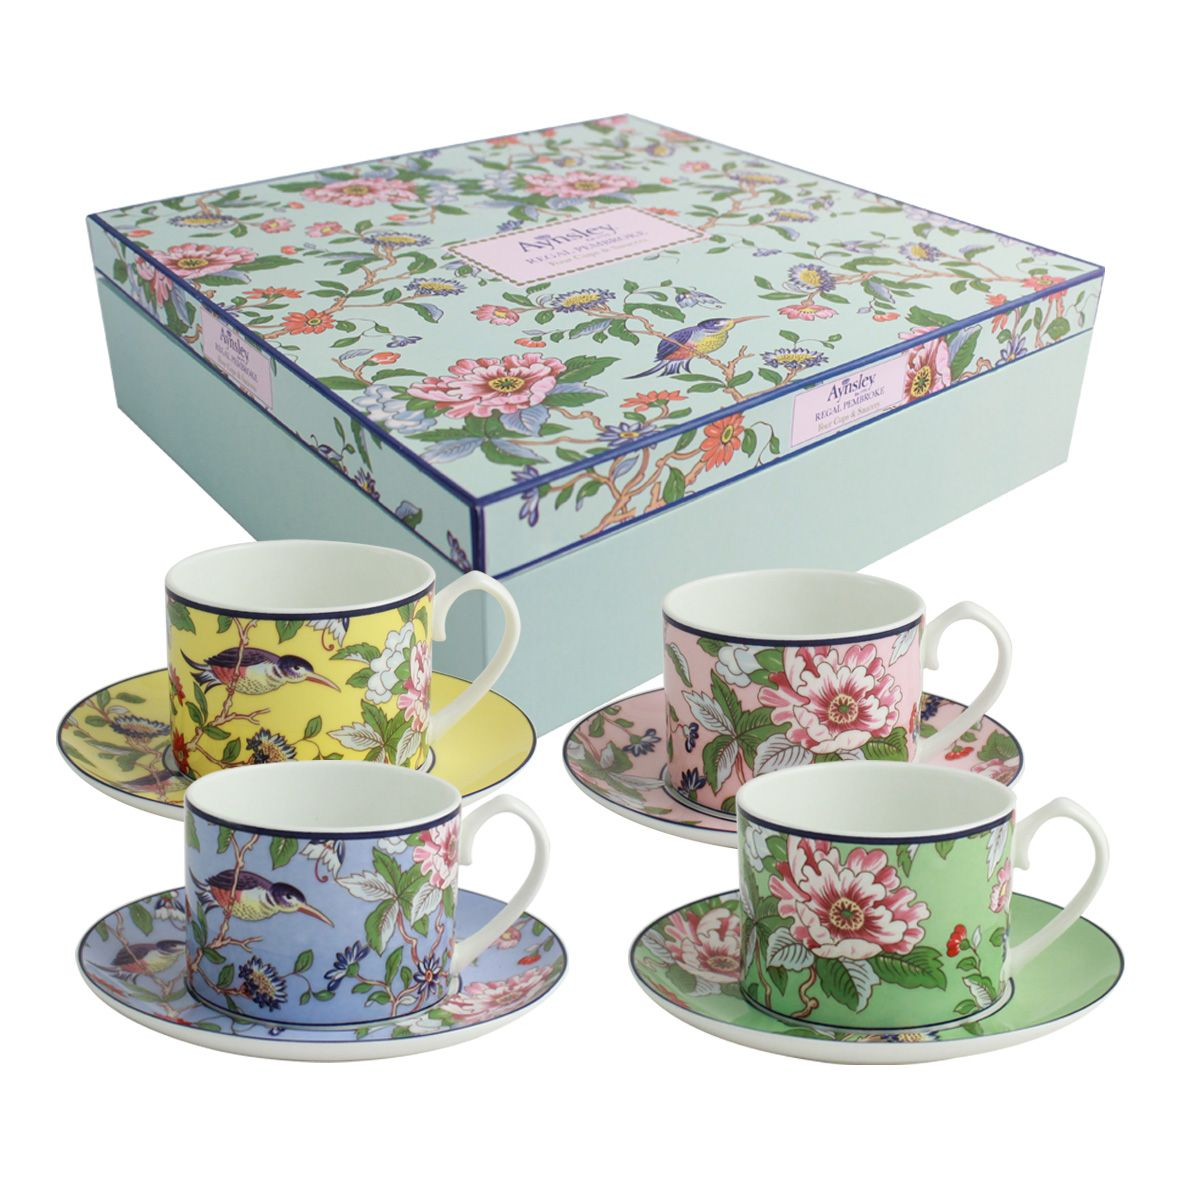 Aynsley Aynsley Pembroke 4 regal cups and saucers